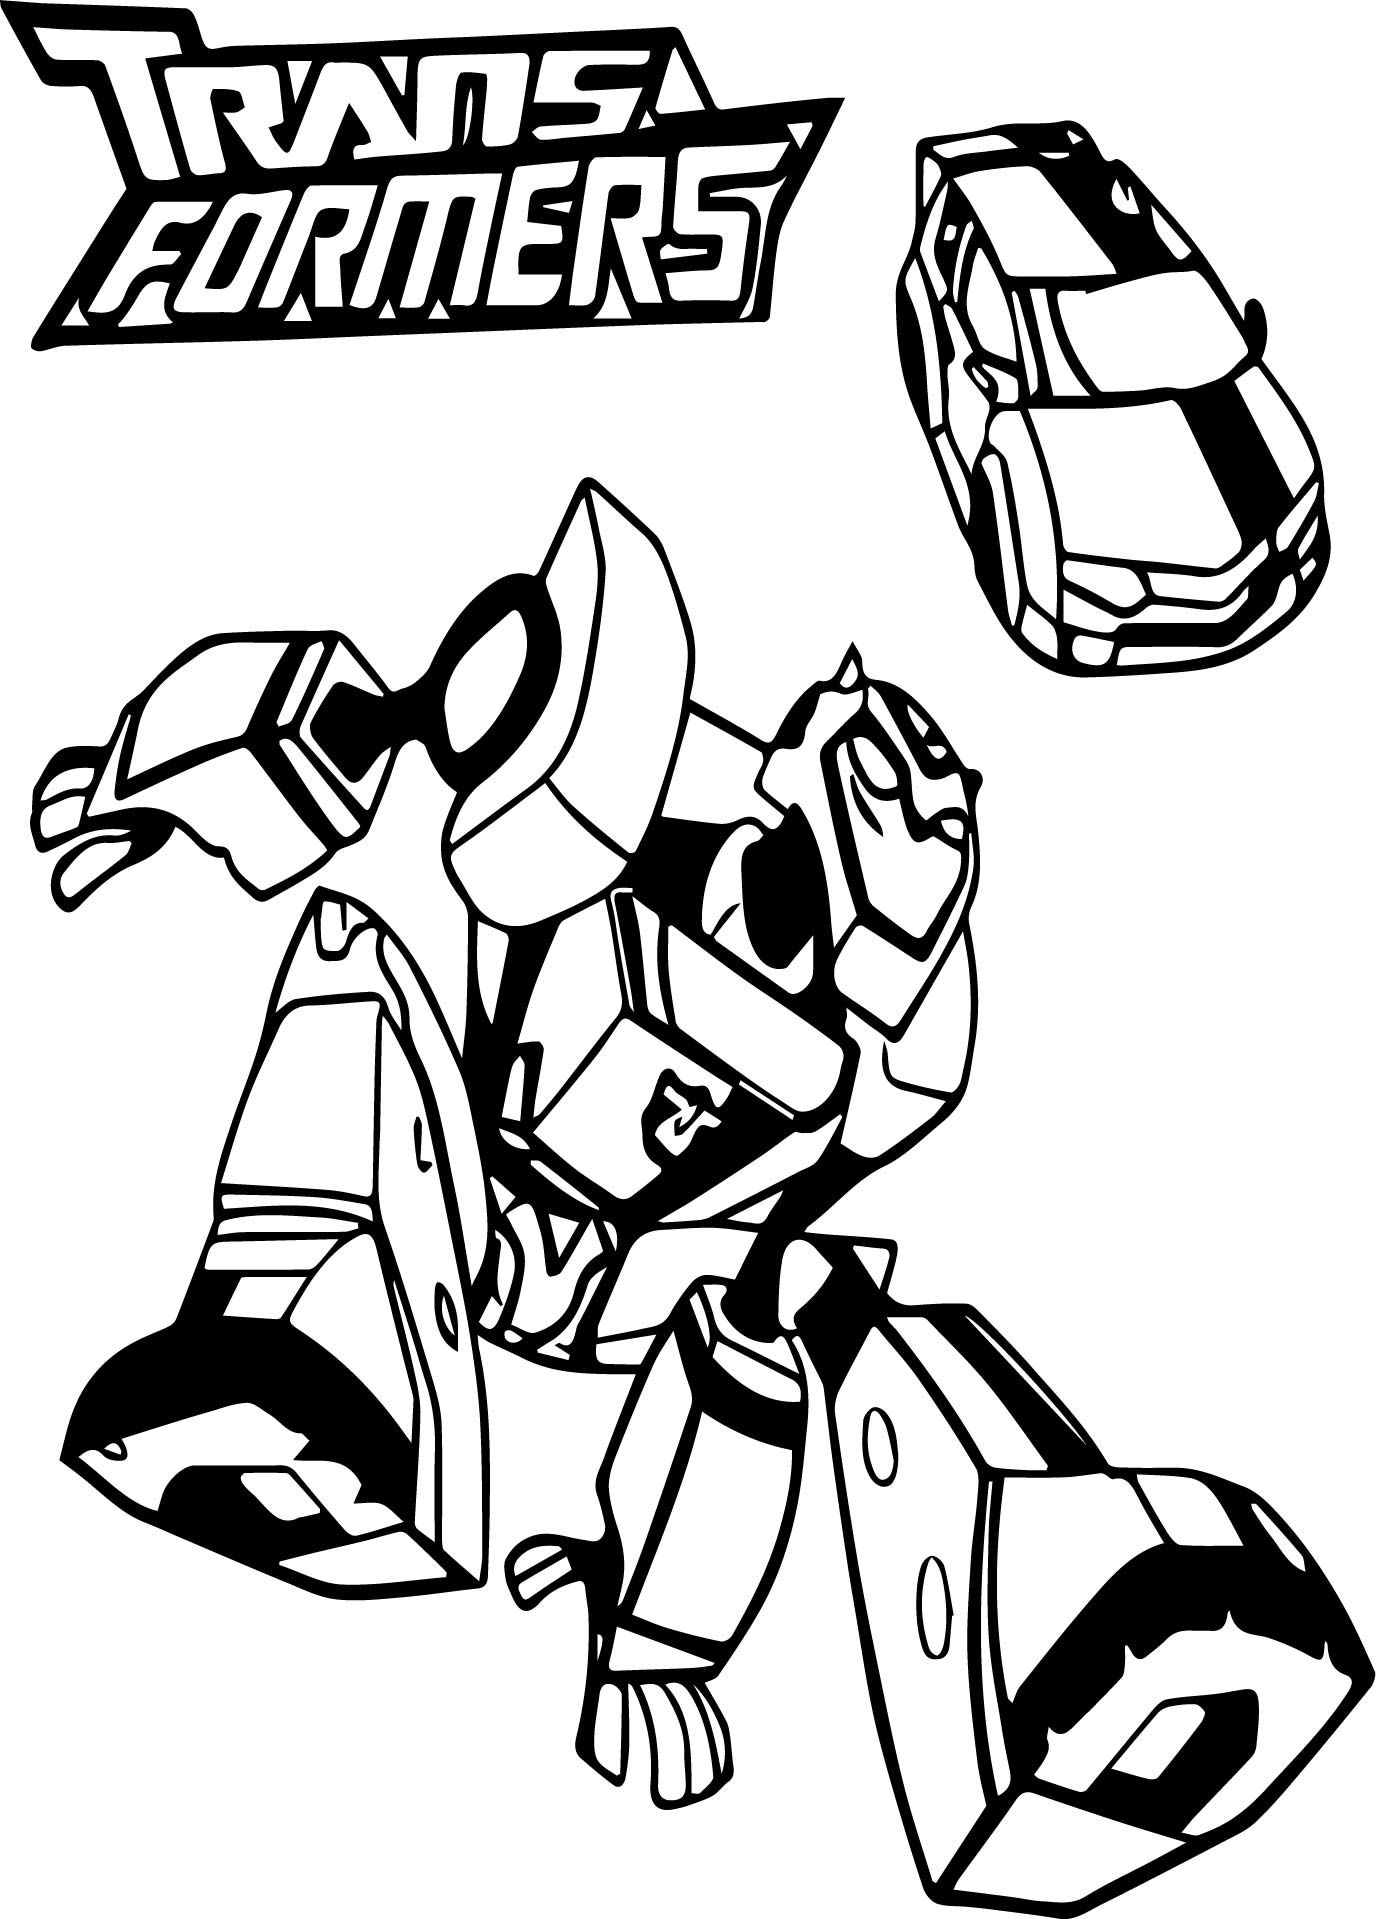 Bumblebee Car Transformers Coloring Page Wecoloringpage Com With